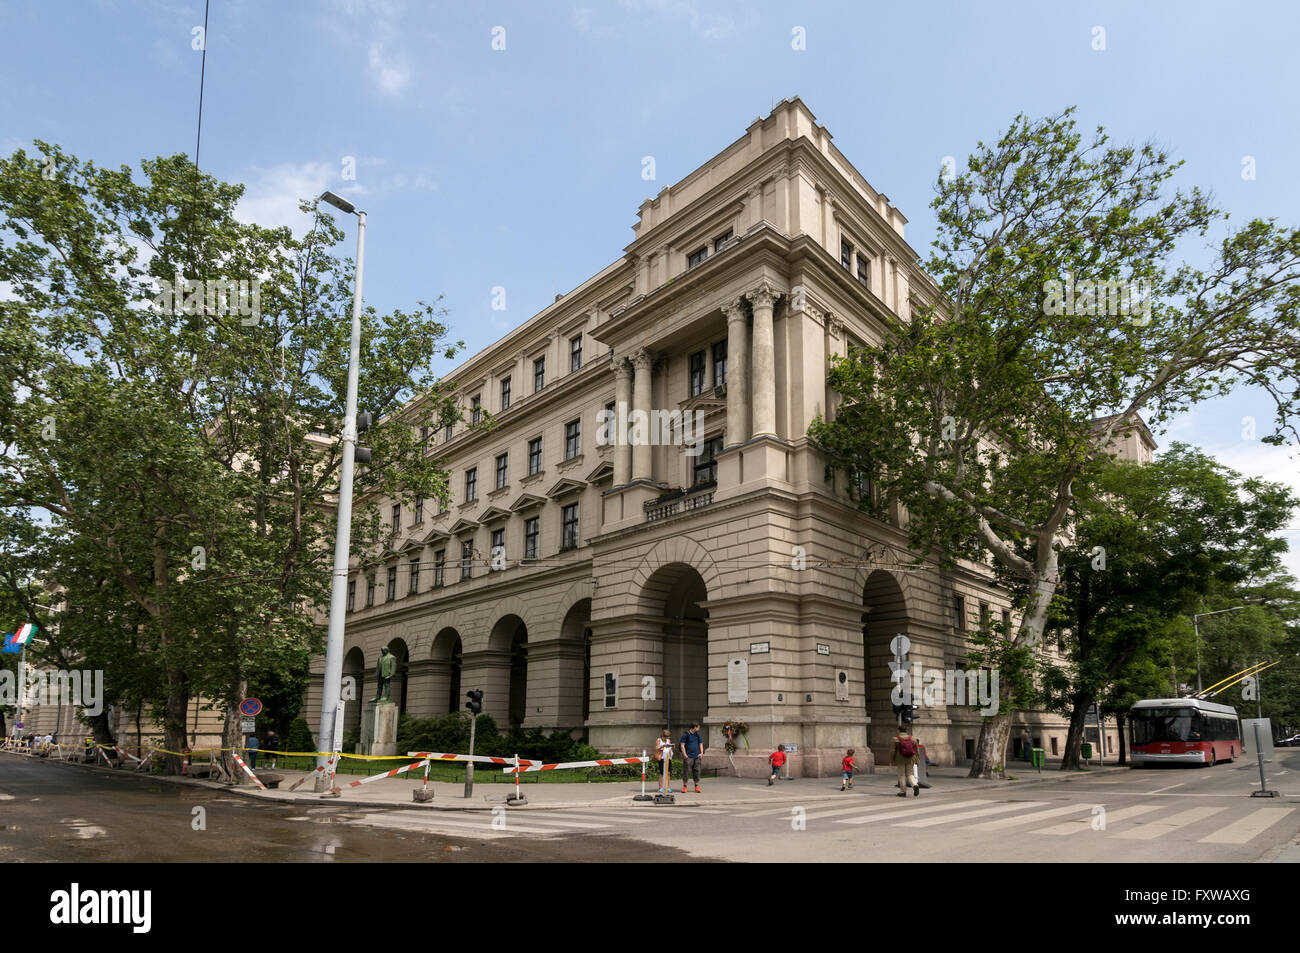 Ministry of Rural Development in Kossuth Lajos tér,Budapest,Hungary - Stock Image